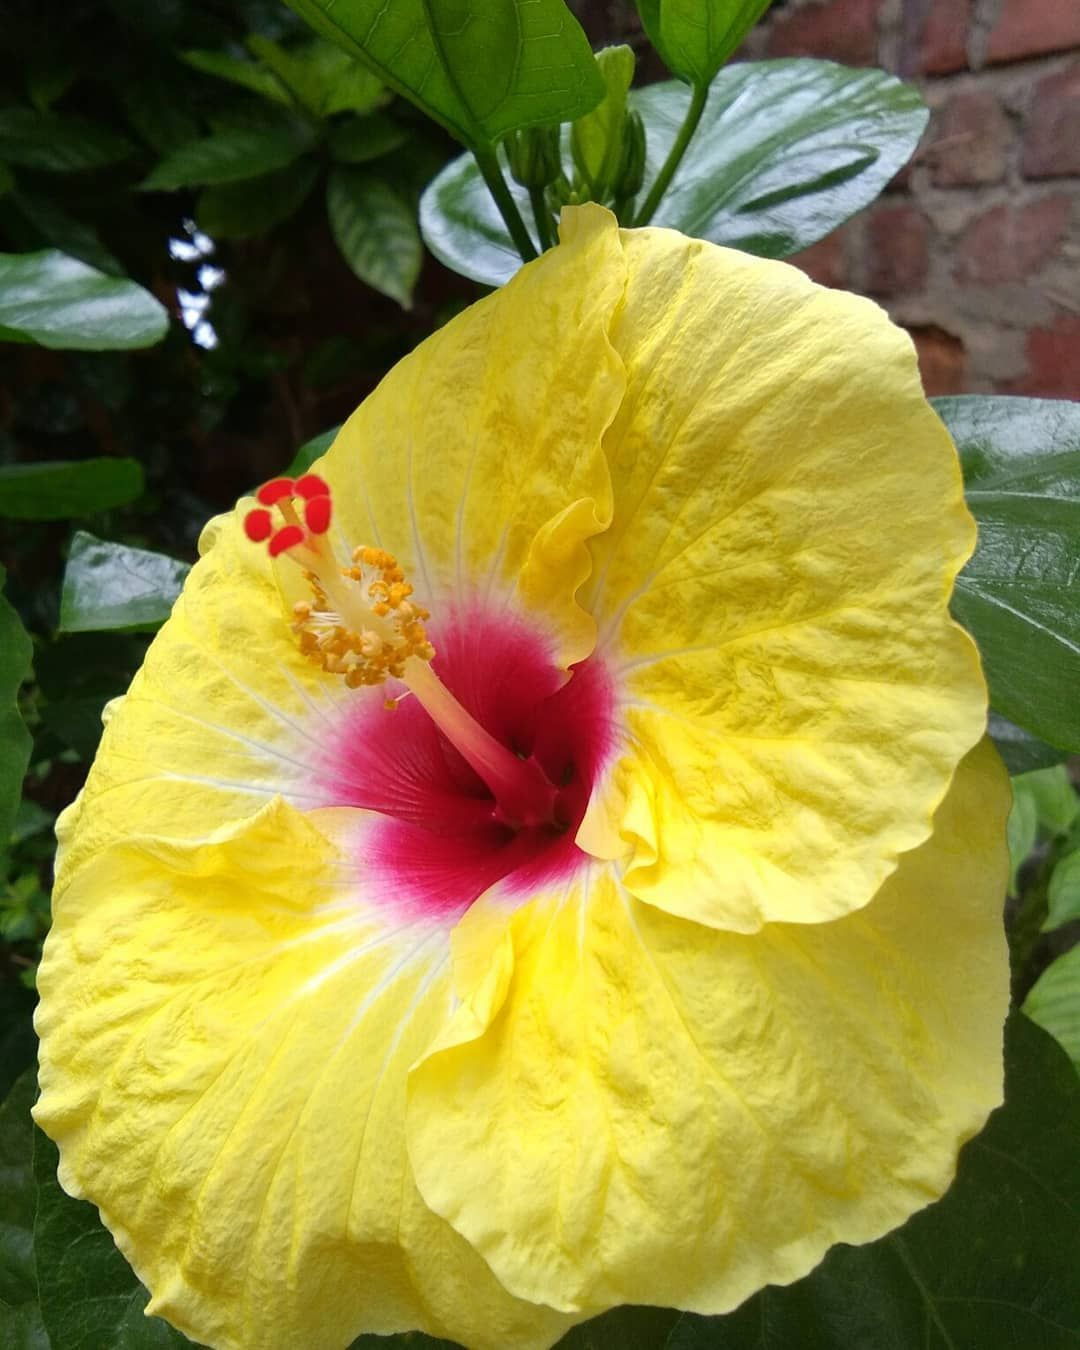 Hibiscus Bright Yellow With Red Center Hibiscusflower Yellowhibiscus Naturephotography Naturelovers In 2020 Yellow Hibiscus Hibiscus Flowers Hibiscus